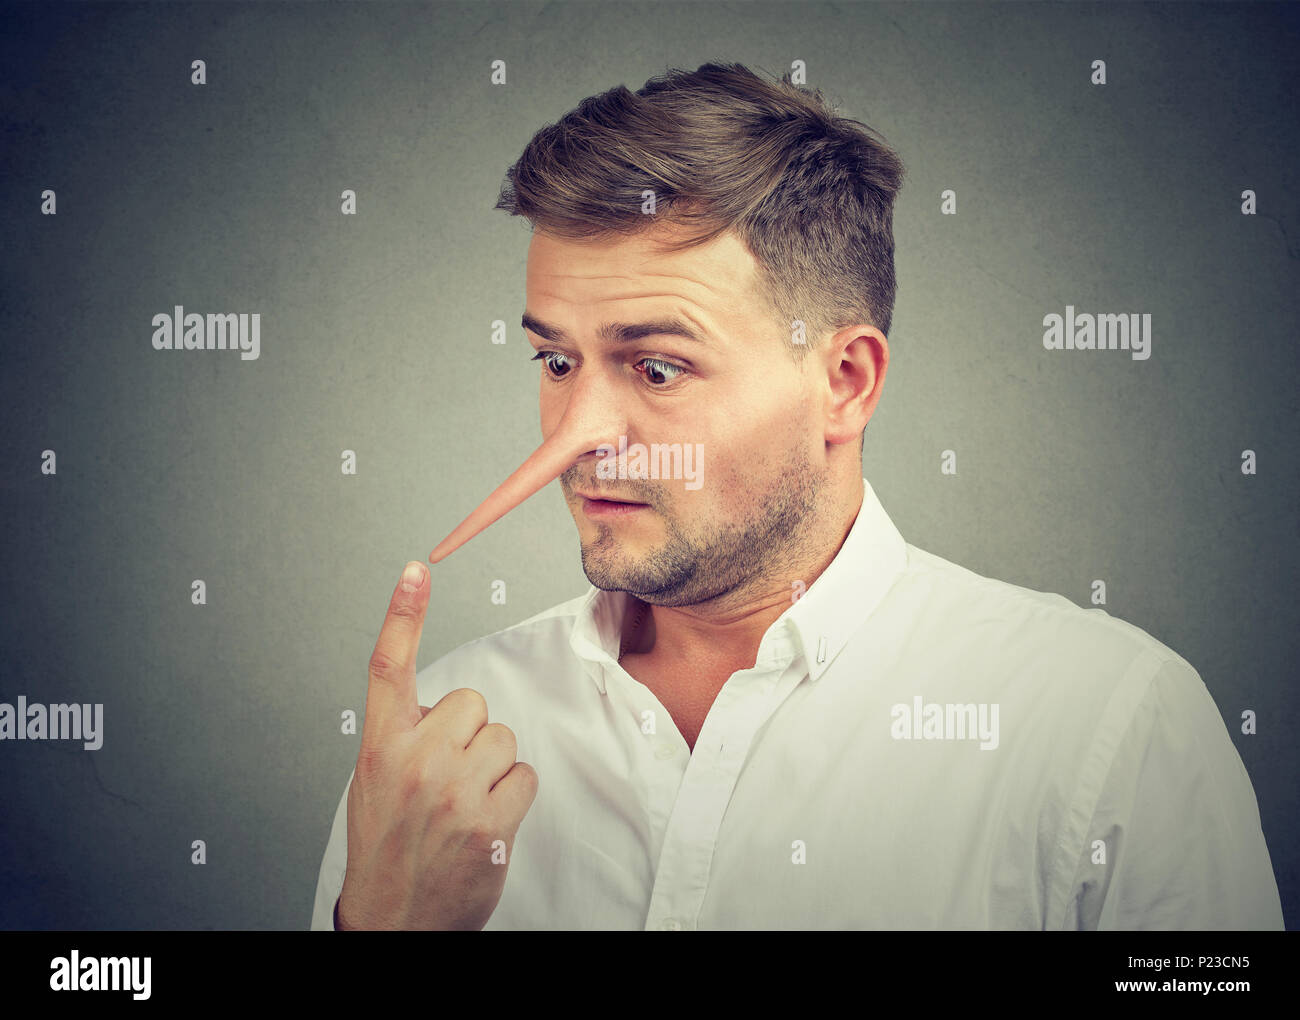 Worried shocked man with long nose. Liar concept. - Stock Image